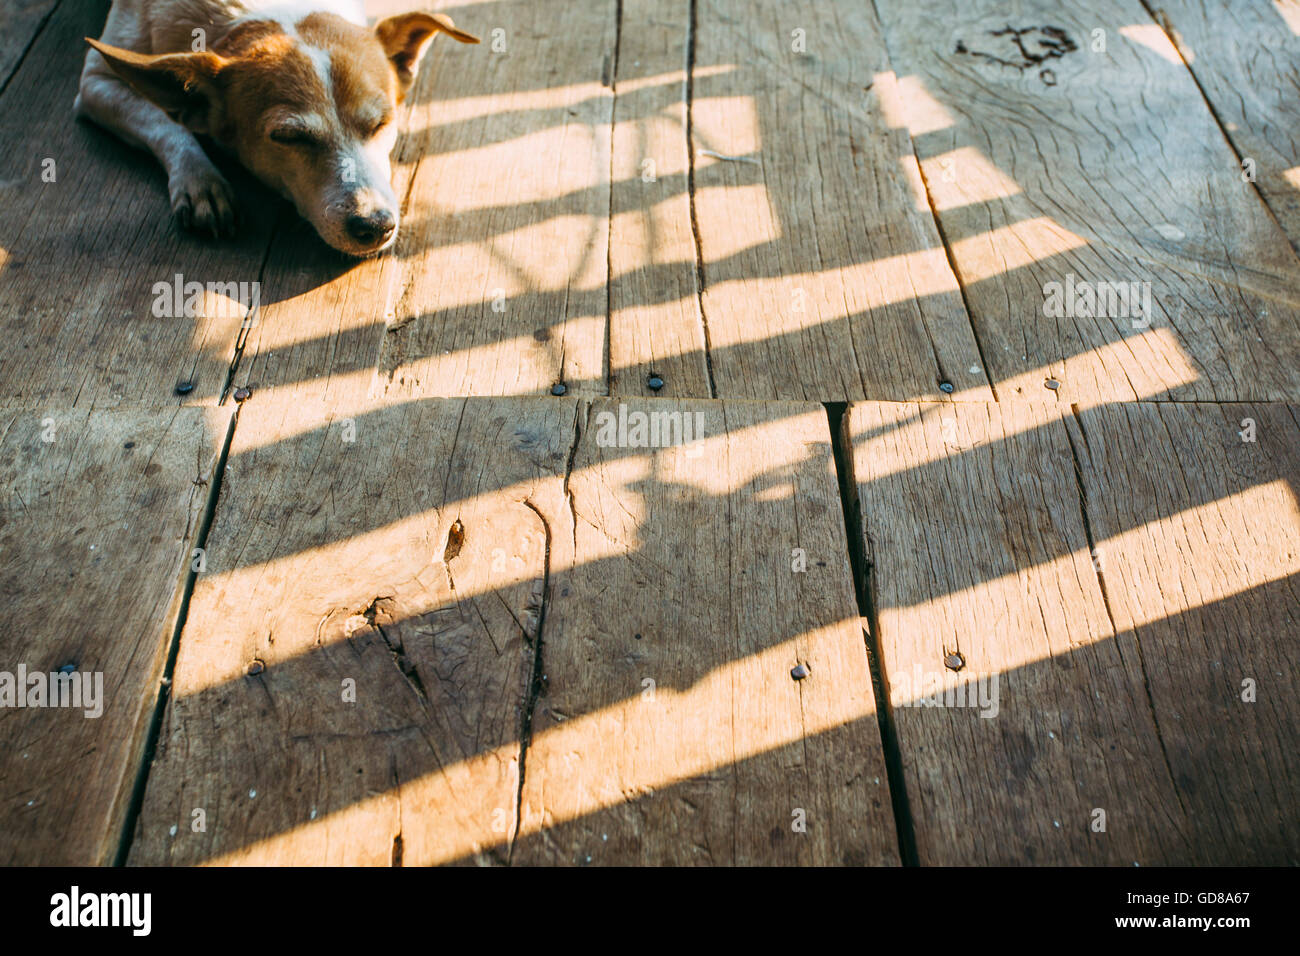 A dog lying on the wooden floor in the village house - Stock Image